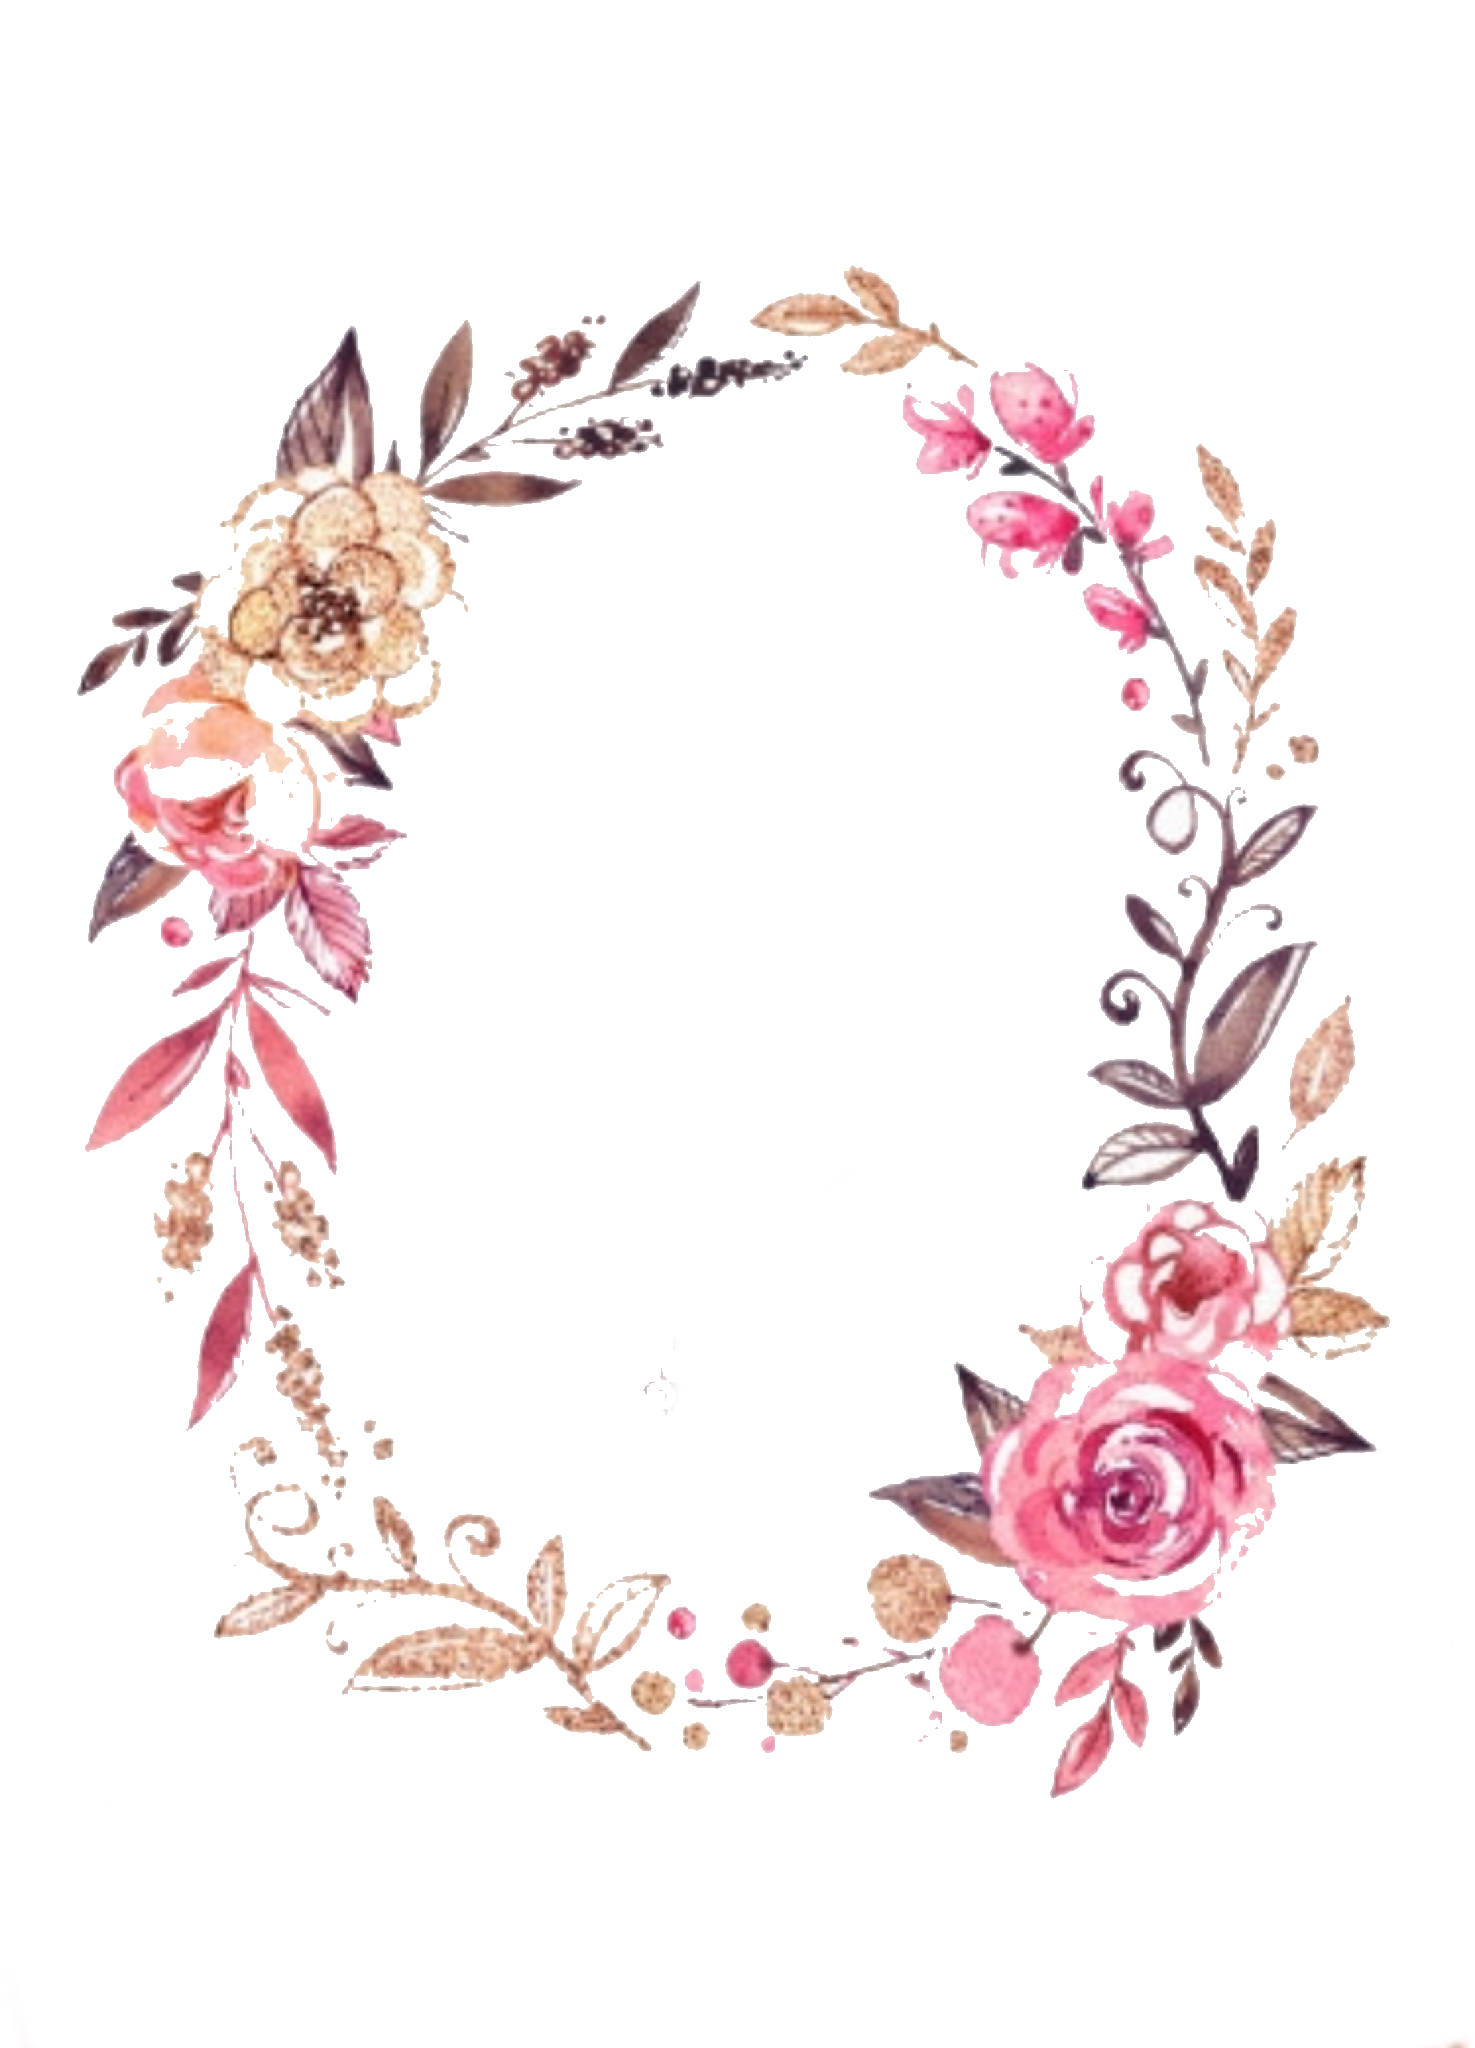 Graphic designs pinterest wreaths. Flower wreath clipart